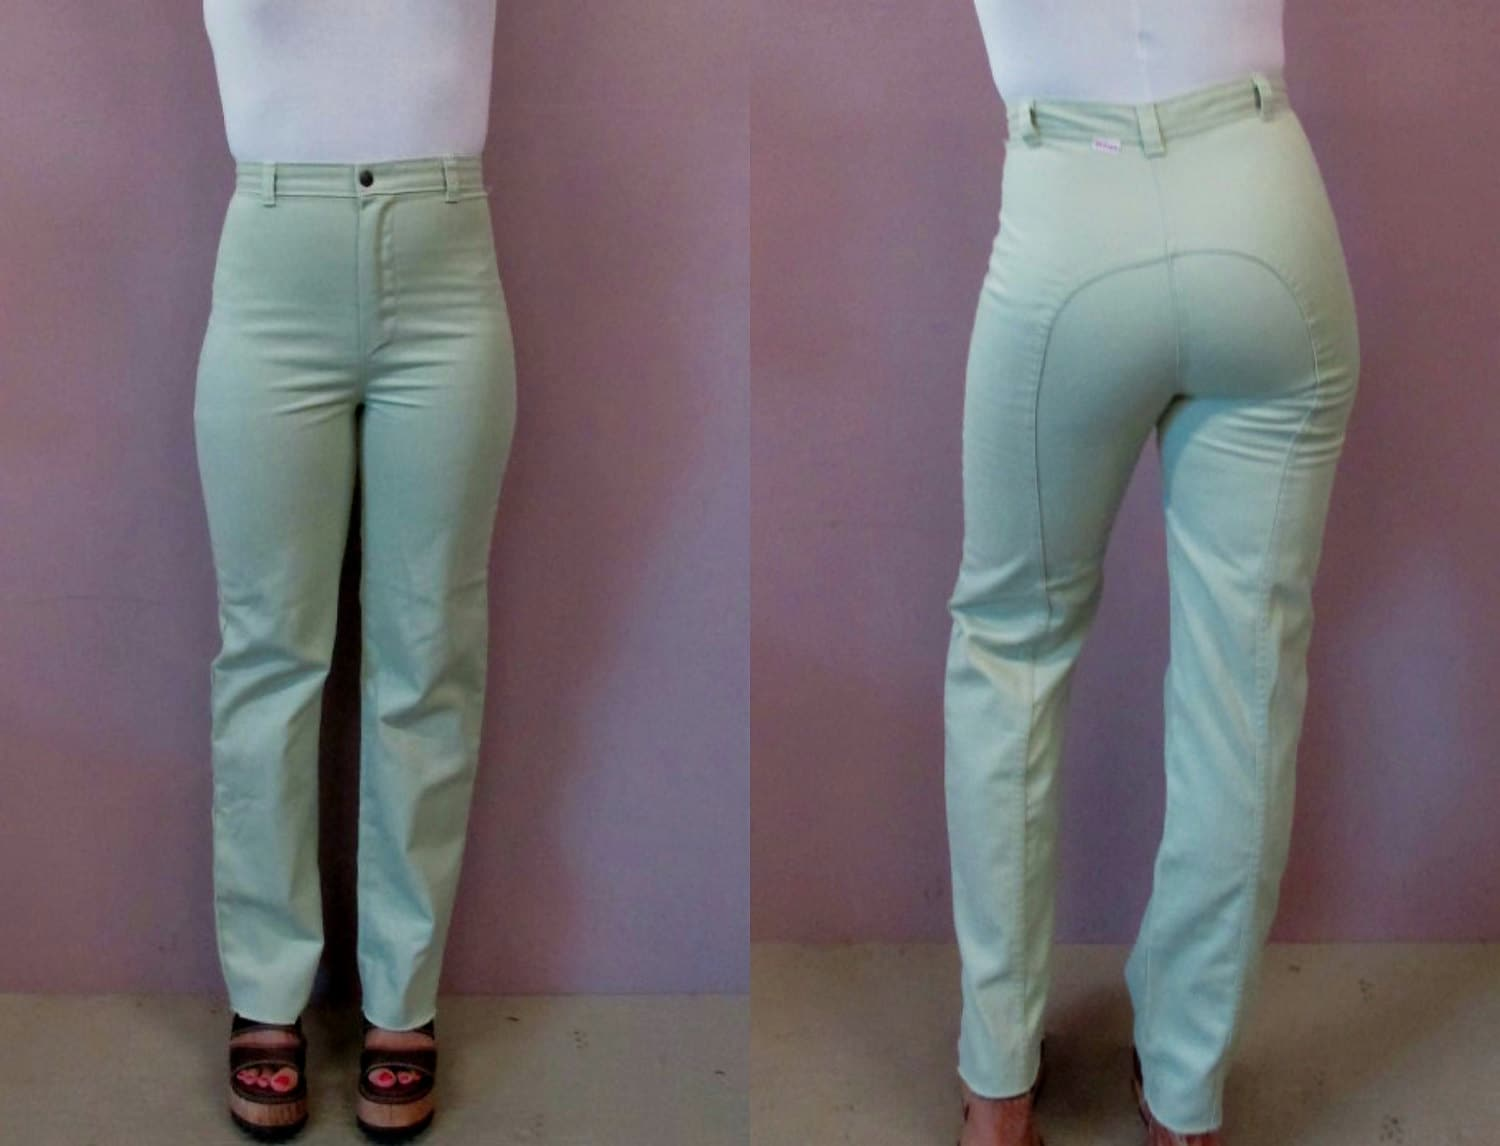 Vintage Dittos Jeans//1970s high wasited saddleback straight